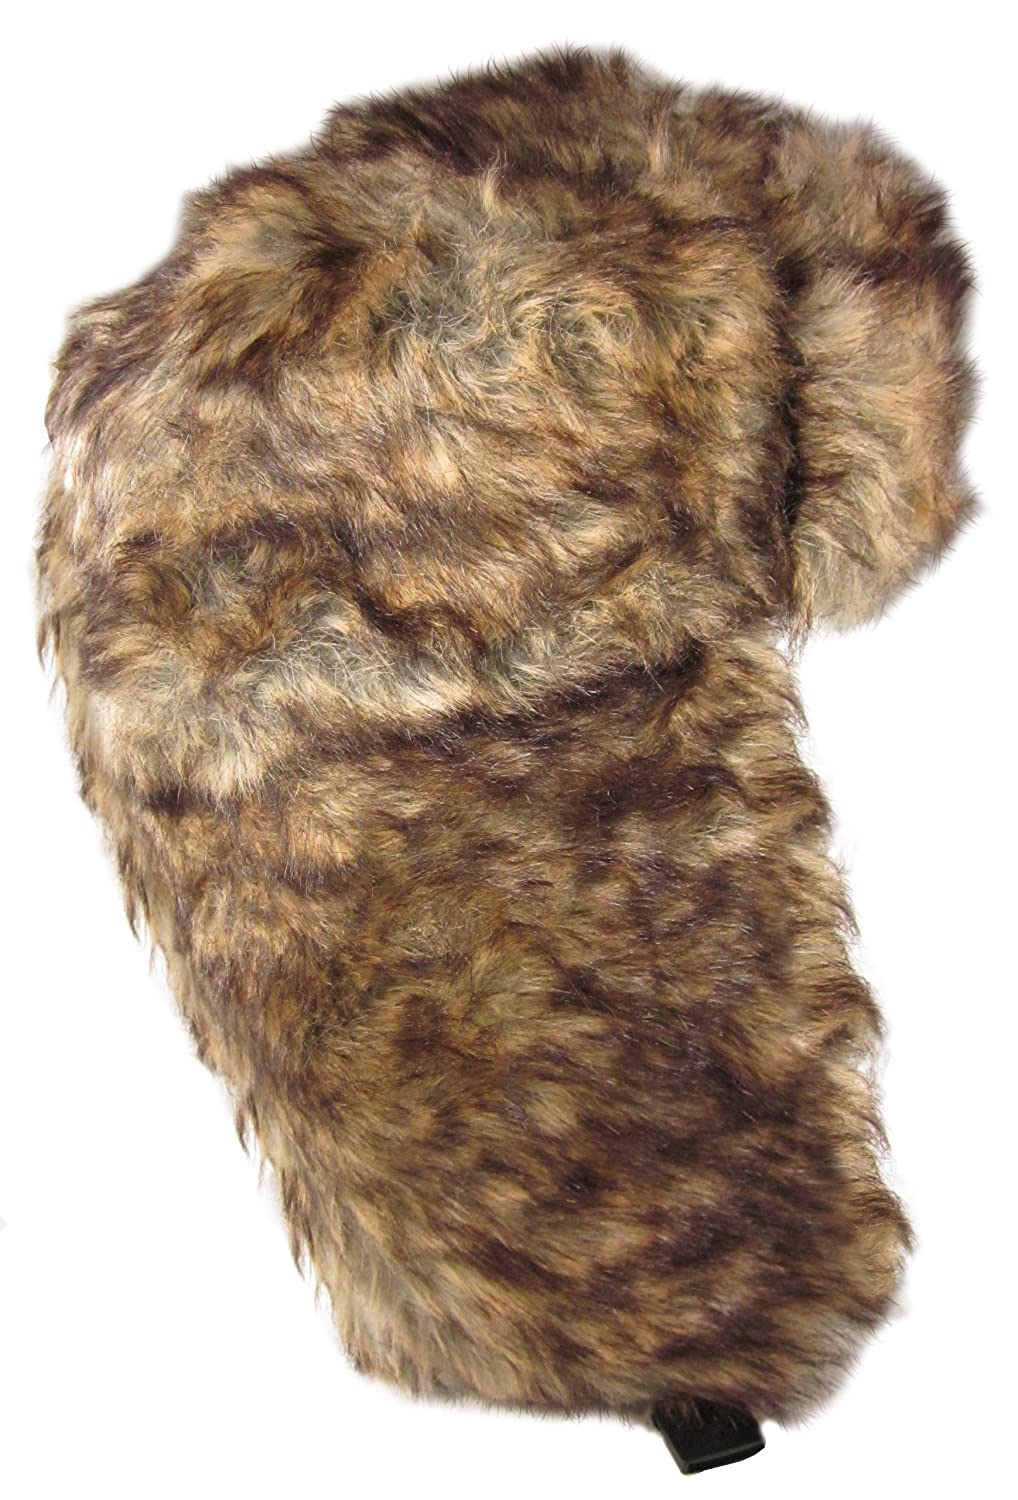 1ae209d83b87c Dakota Dan Winter Trooper Hat Faux Brown Rabbit Fur - One Size Fits Most   Amazon.ca  Sports   Outdoors